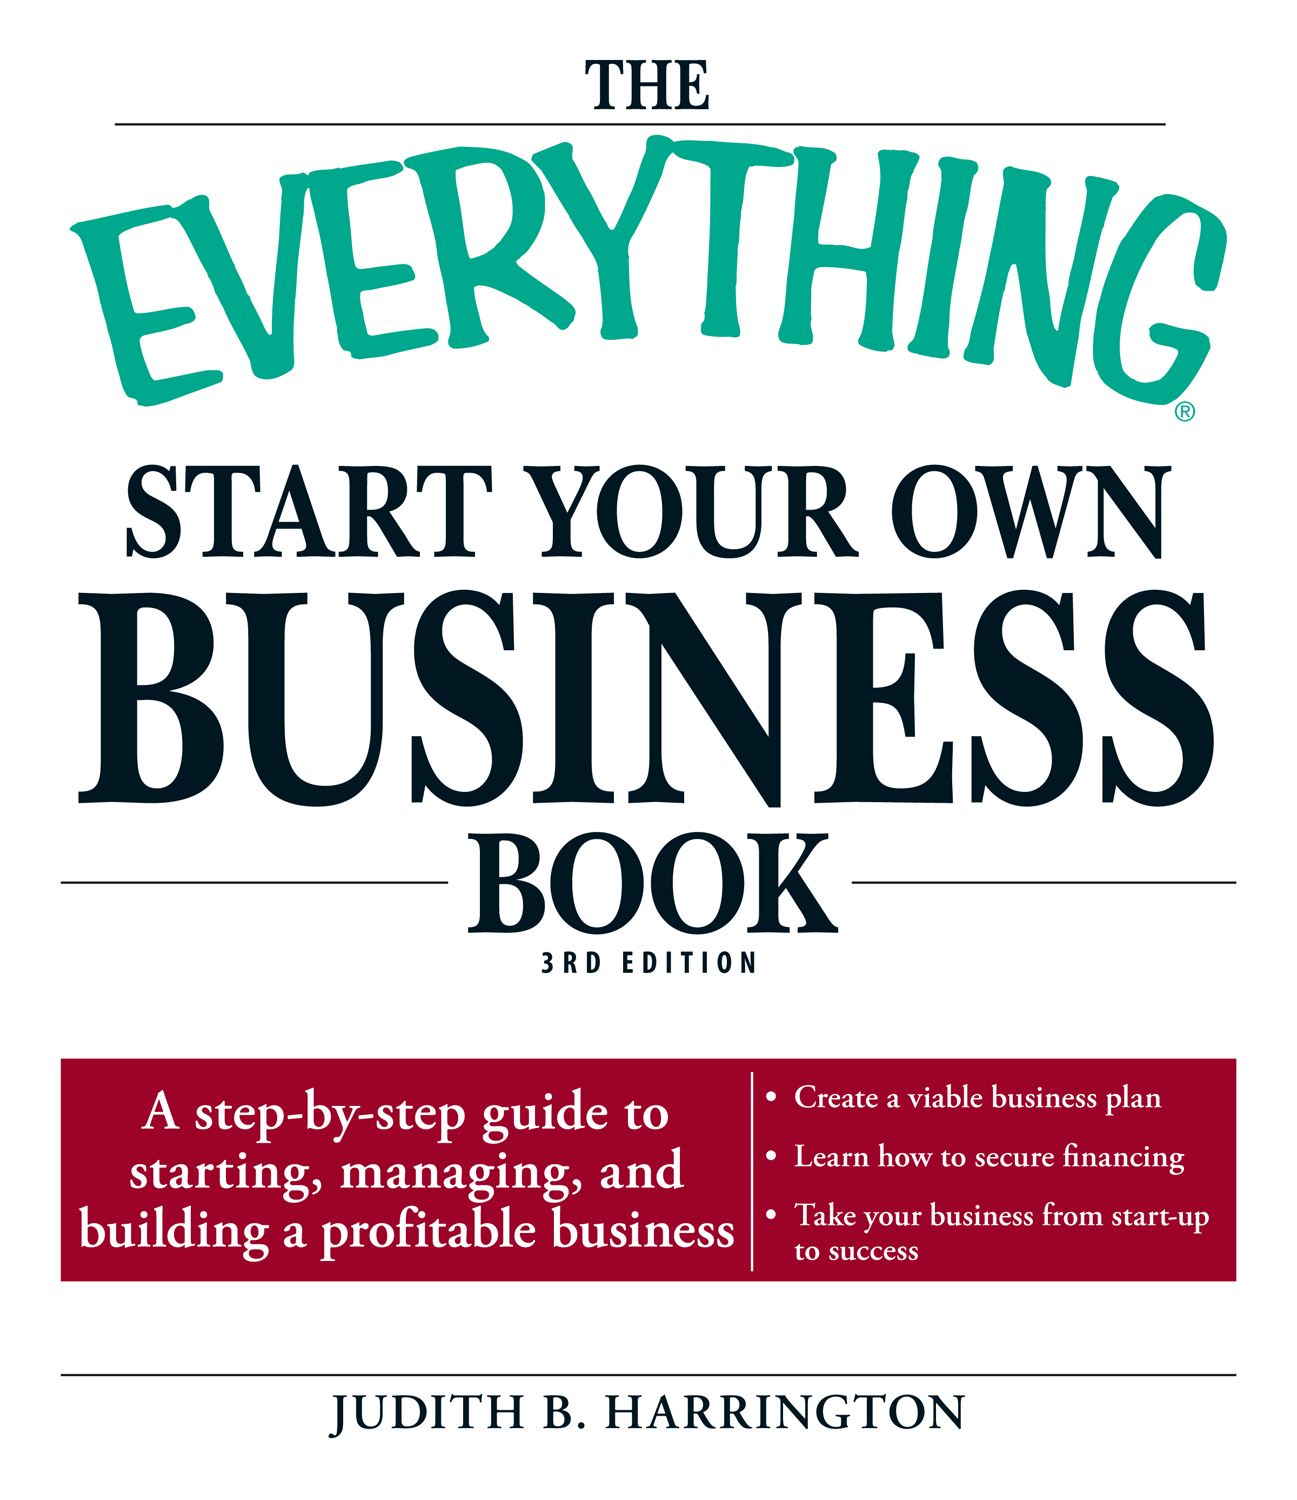 The Everything Start Your Own Business Book: A step-by-step guide to starting, managing, and building a profitable business